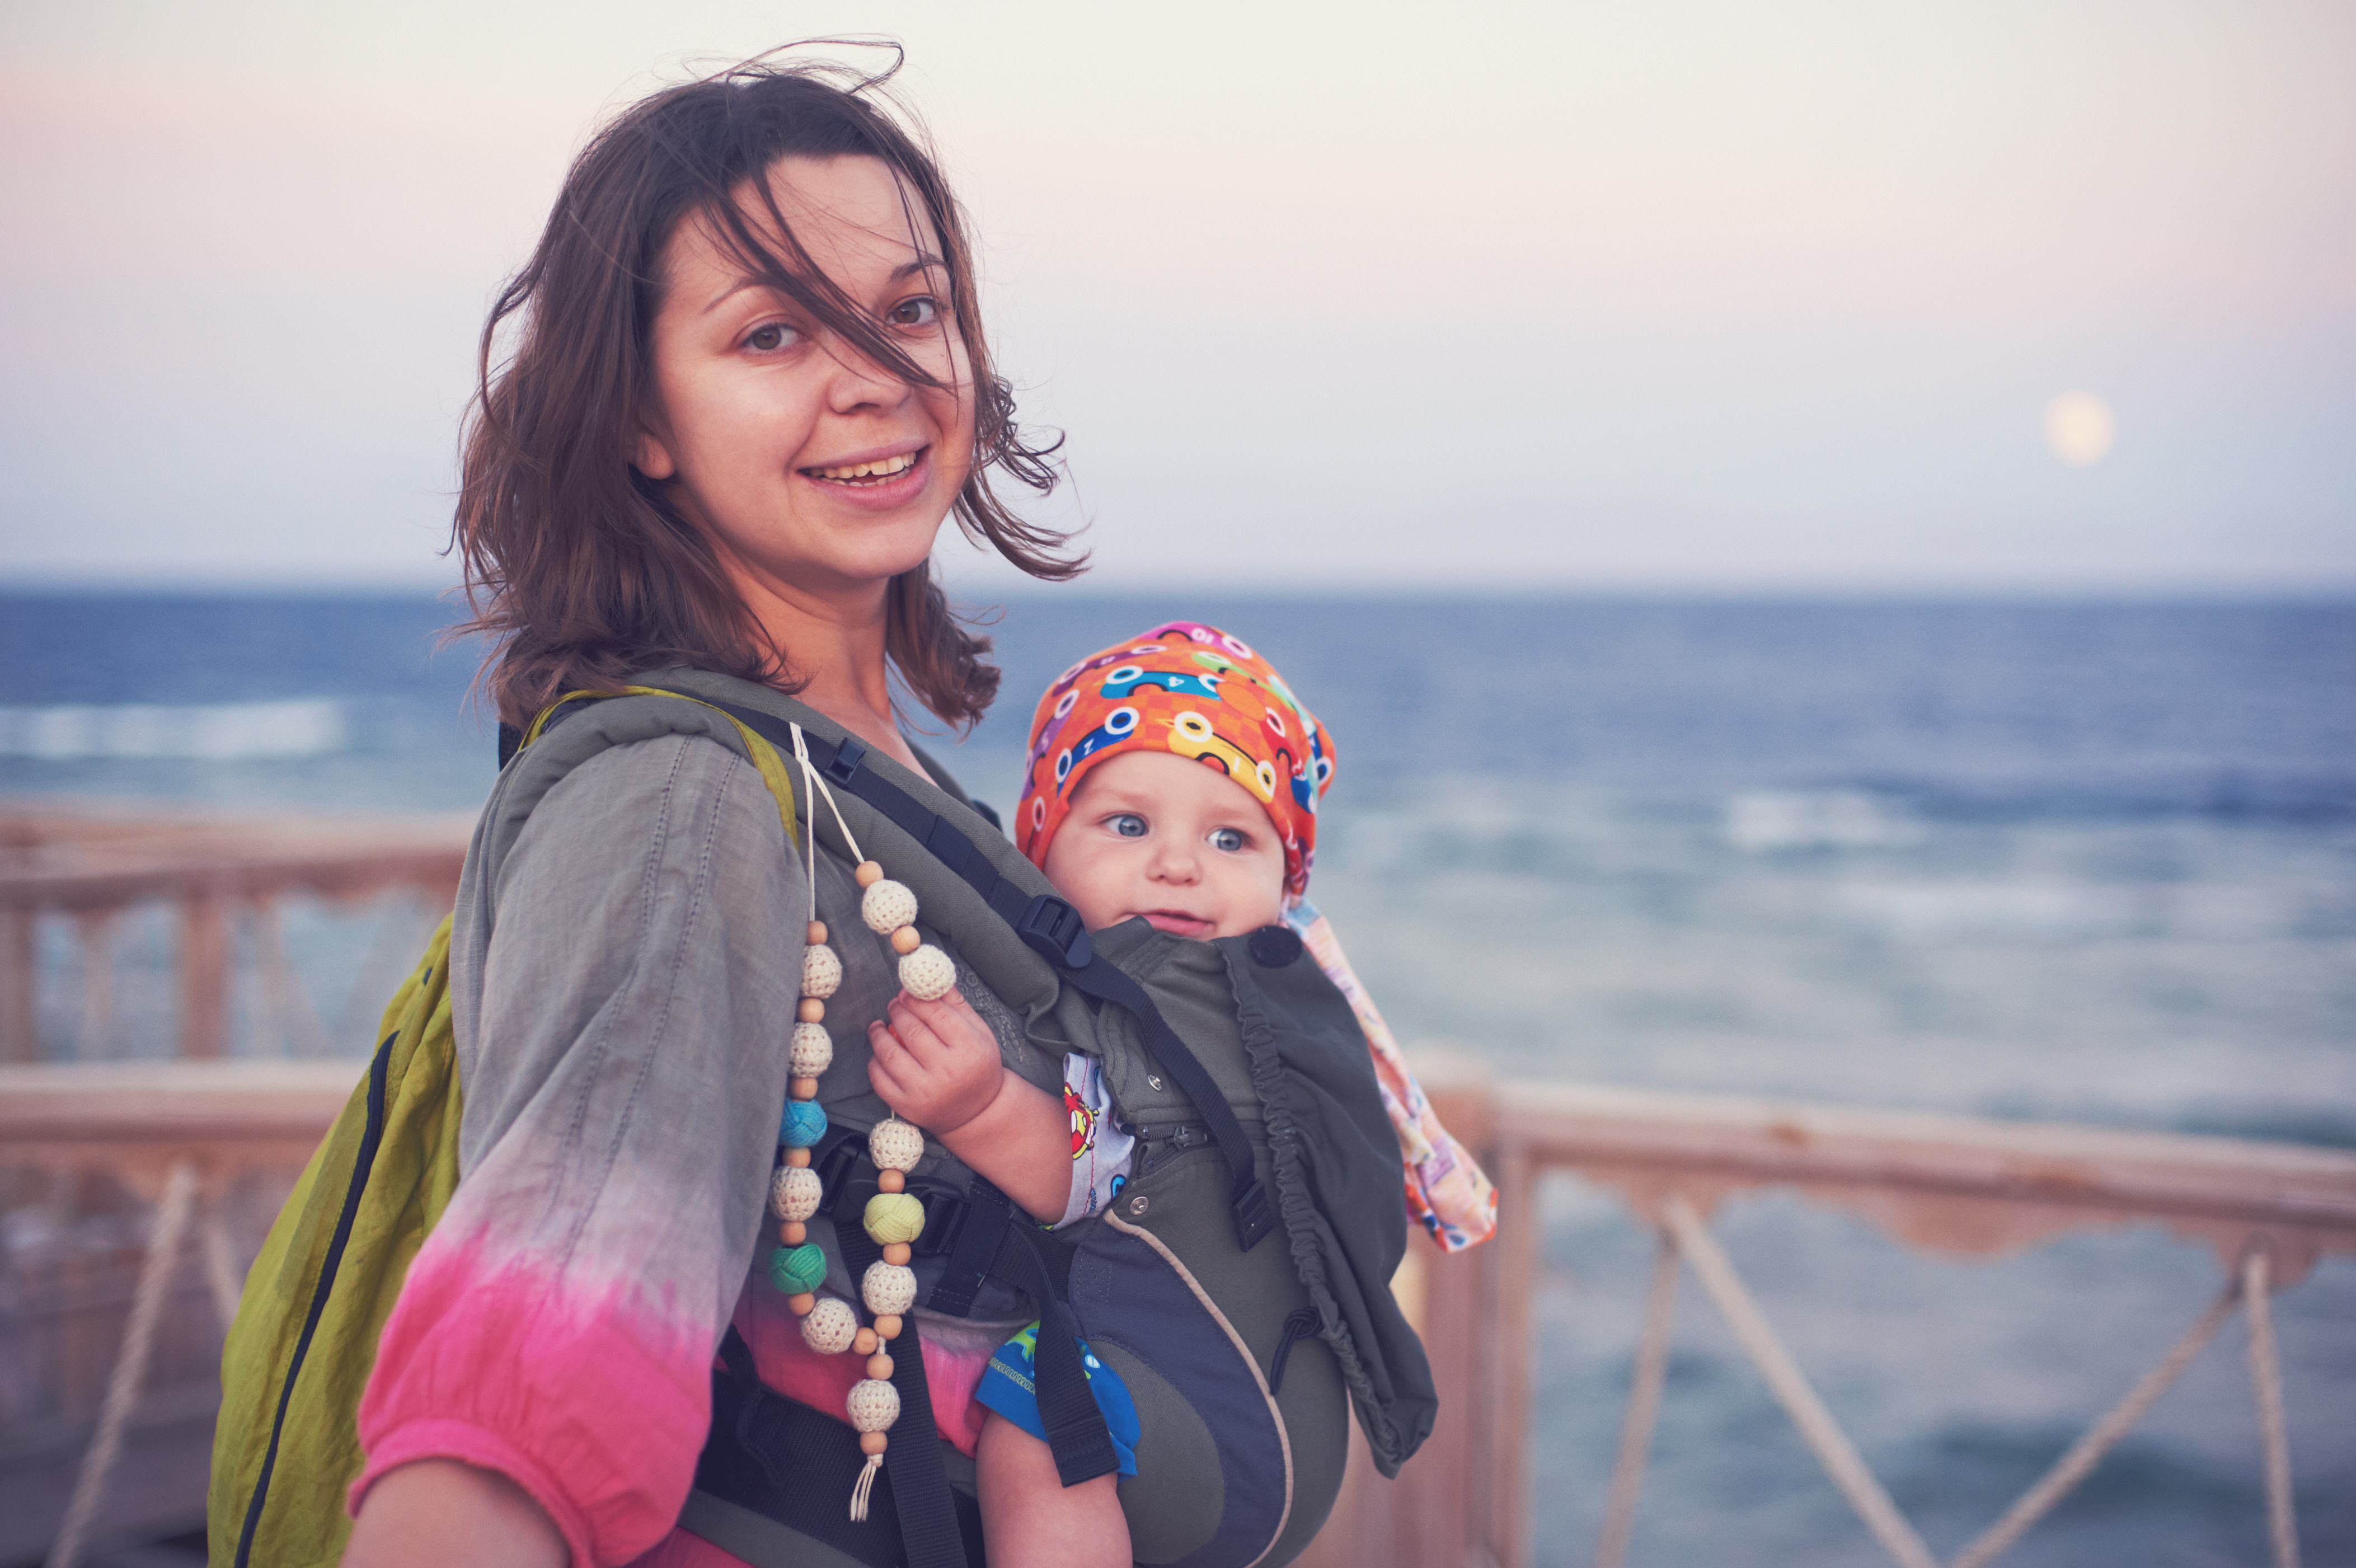 woman and baby.jpg